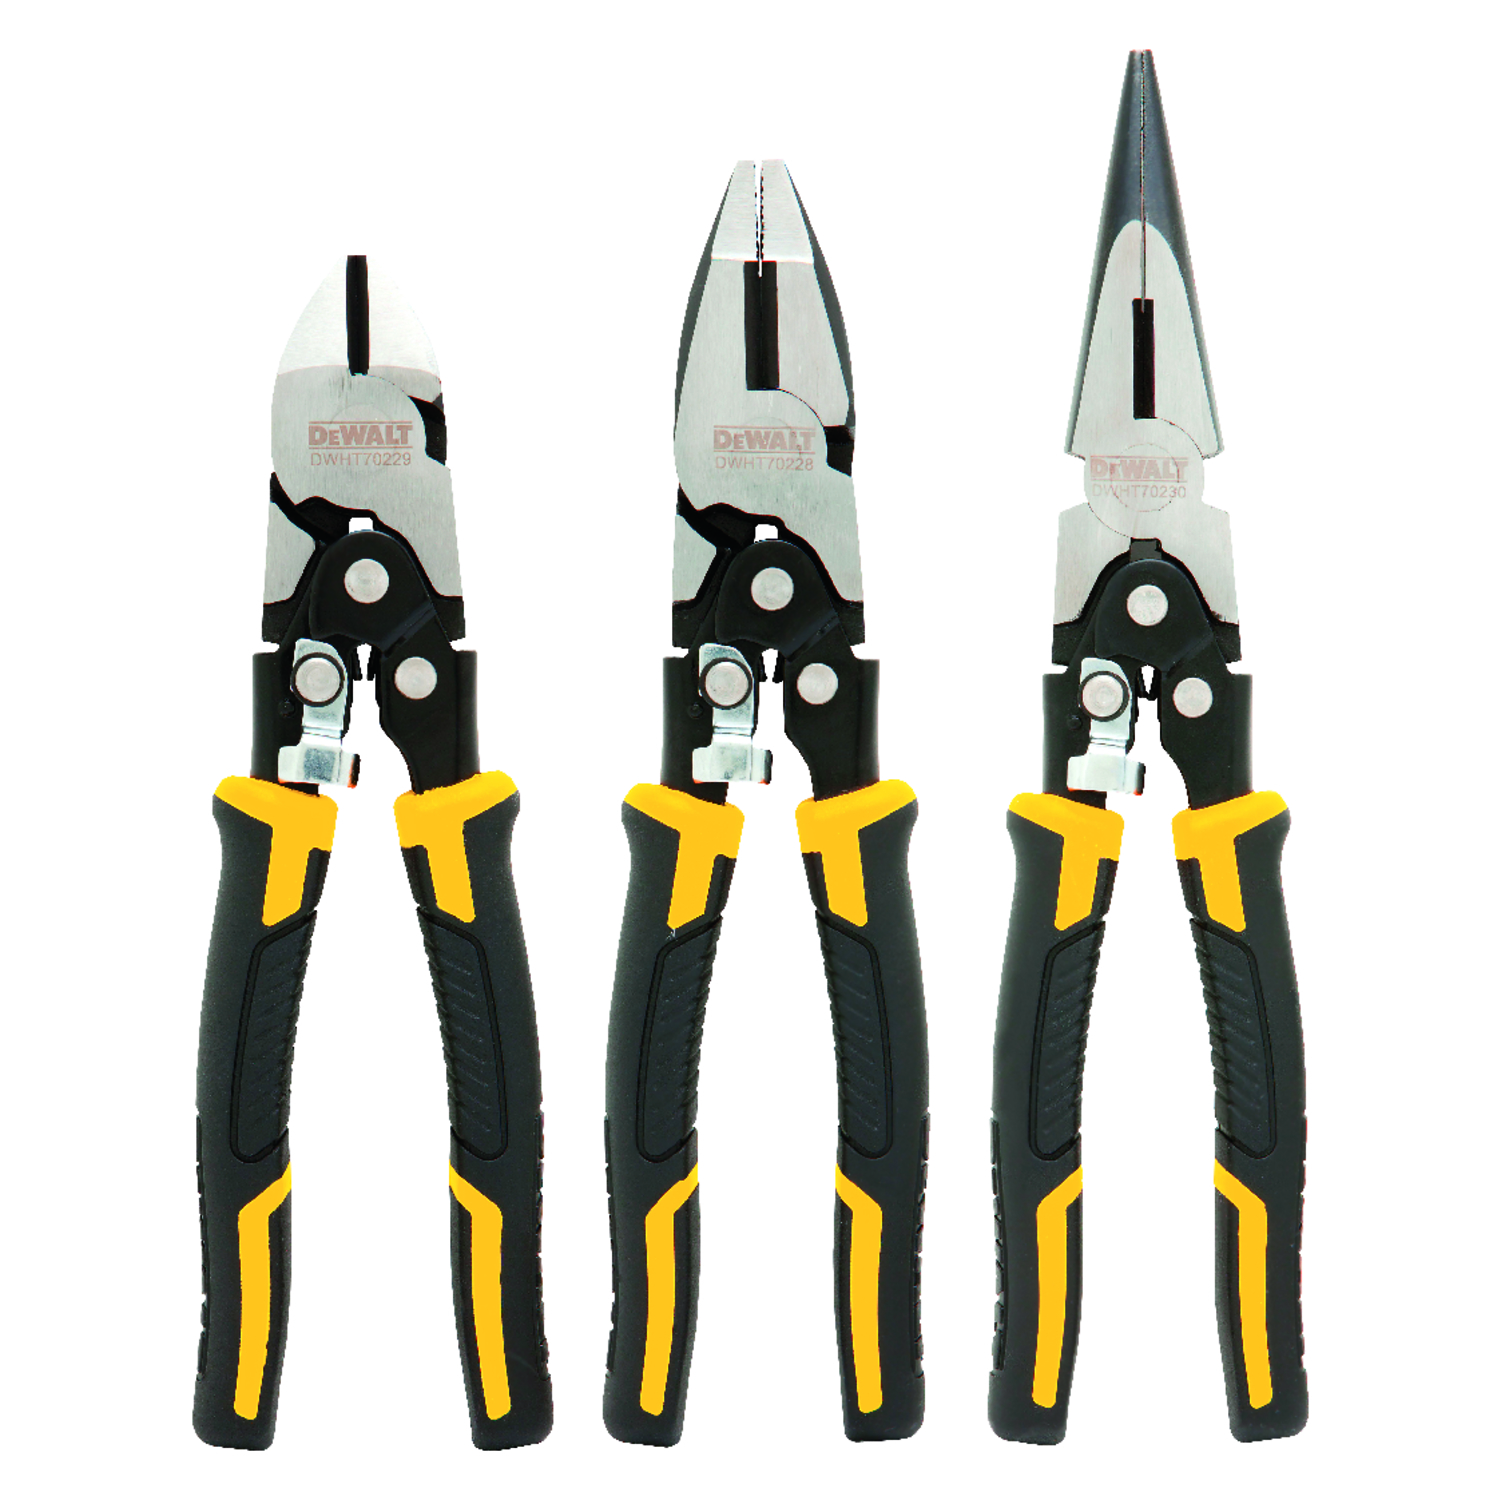 DeWalt  Chrome Vanadium Steel  Pliers Set  Yellow  Assorted in. L 3 pk